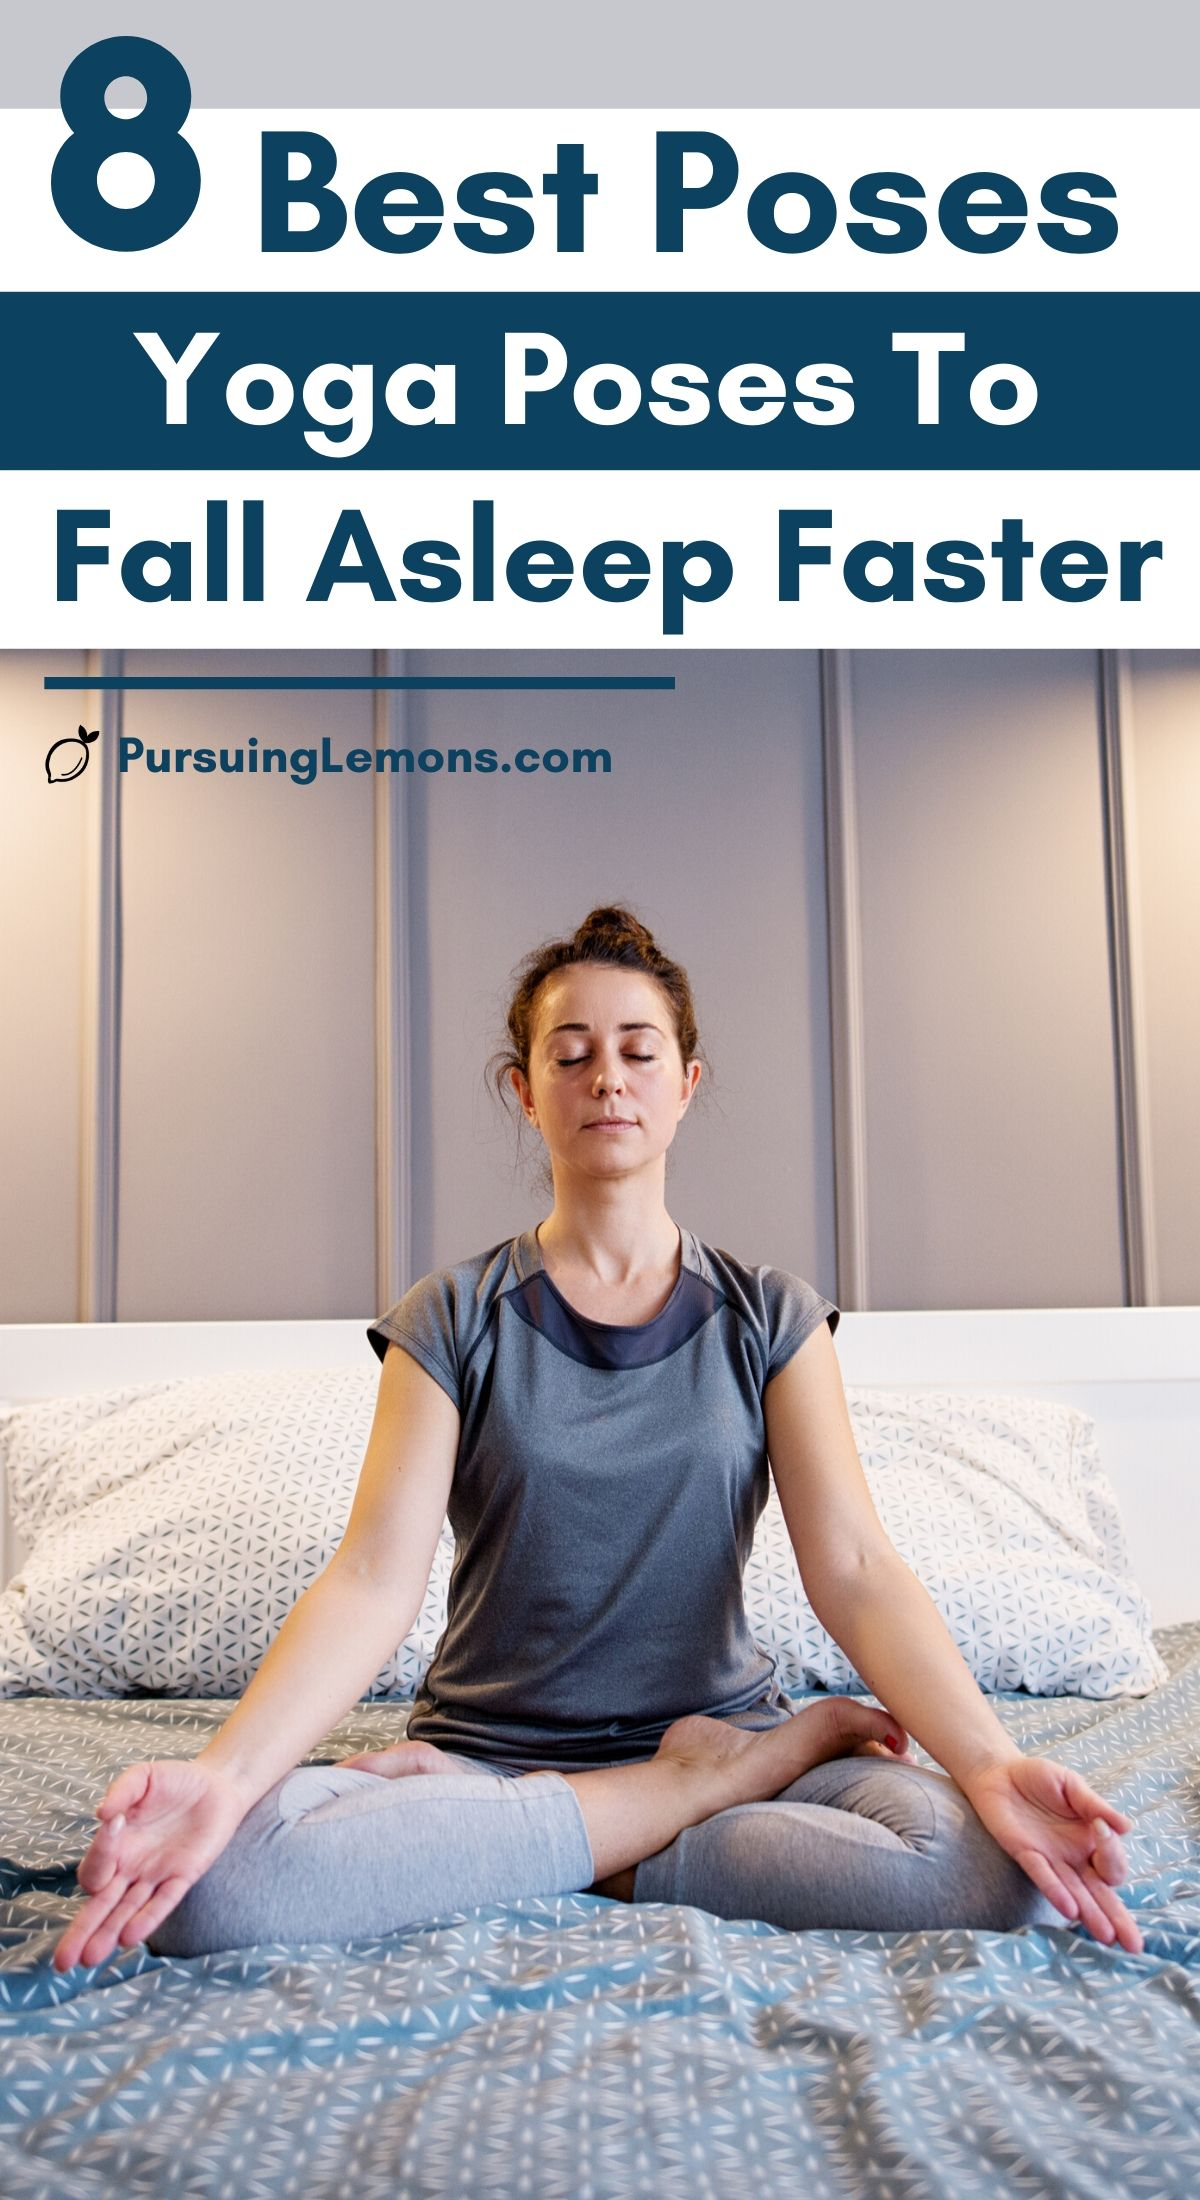 8 Of The Best Yoga Poses To Fall Asleep Faster: yoga night routine, yoga to help you sleep, better sleep yoga, bed yoga bedtime, yoga for bedtime, yoga for bed, yoga before bed sleep, yoga to sleep, bed yoga, sleep yoga poses, bed time yoga sleep, bedtime yoga.  Trying to sleep? Do these yoga poses in bed to help you sleep better! #yogaforbed #bedyoga #yogasleep #sleepyoga